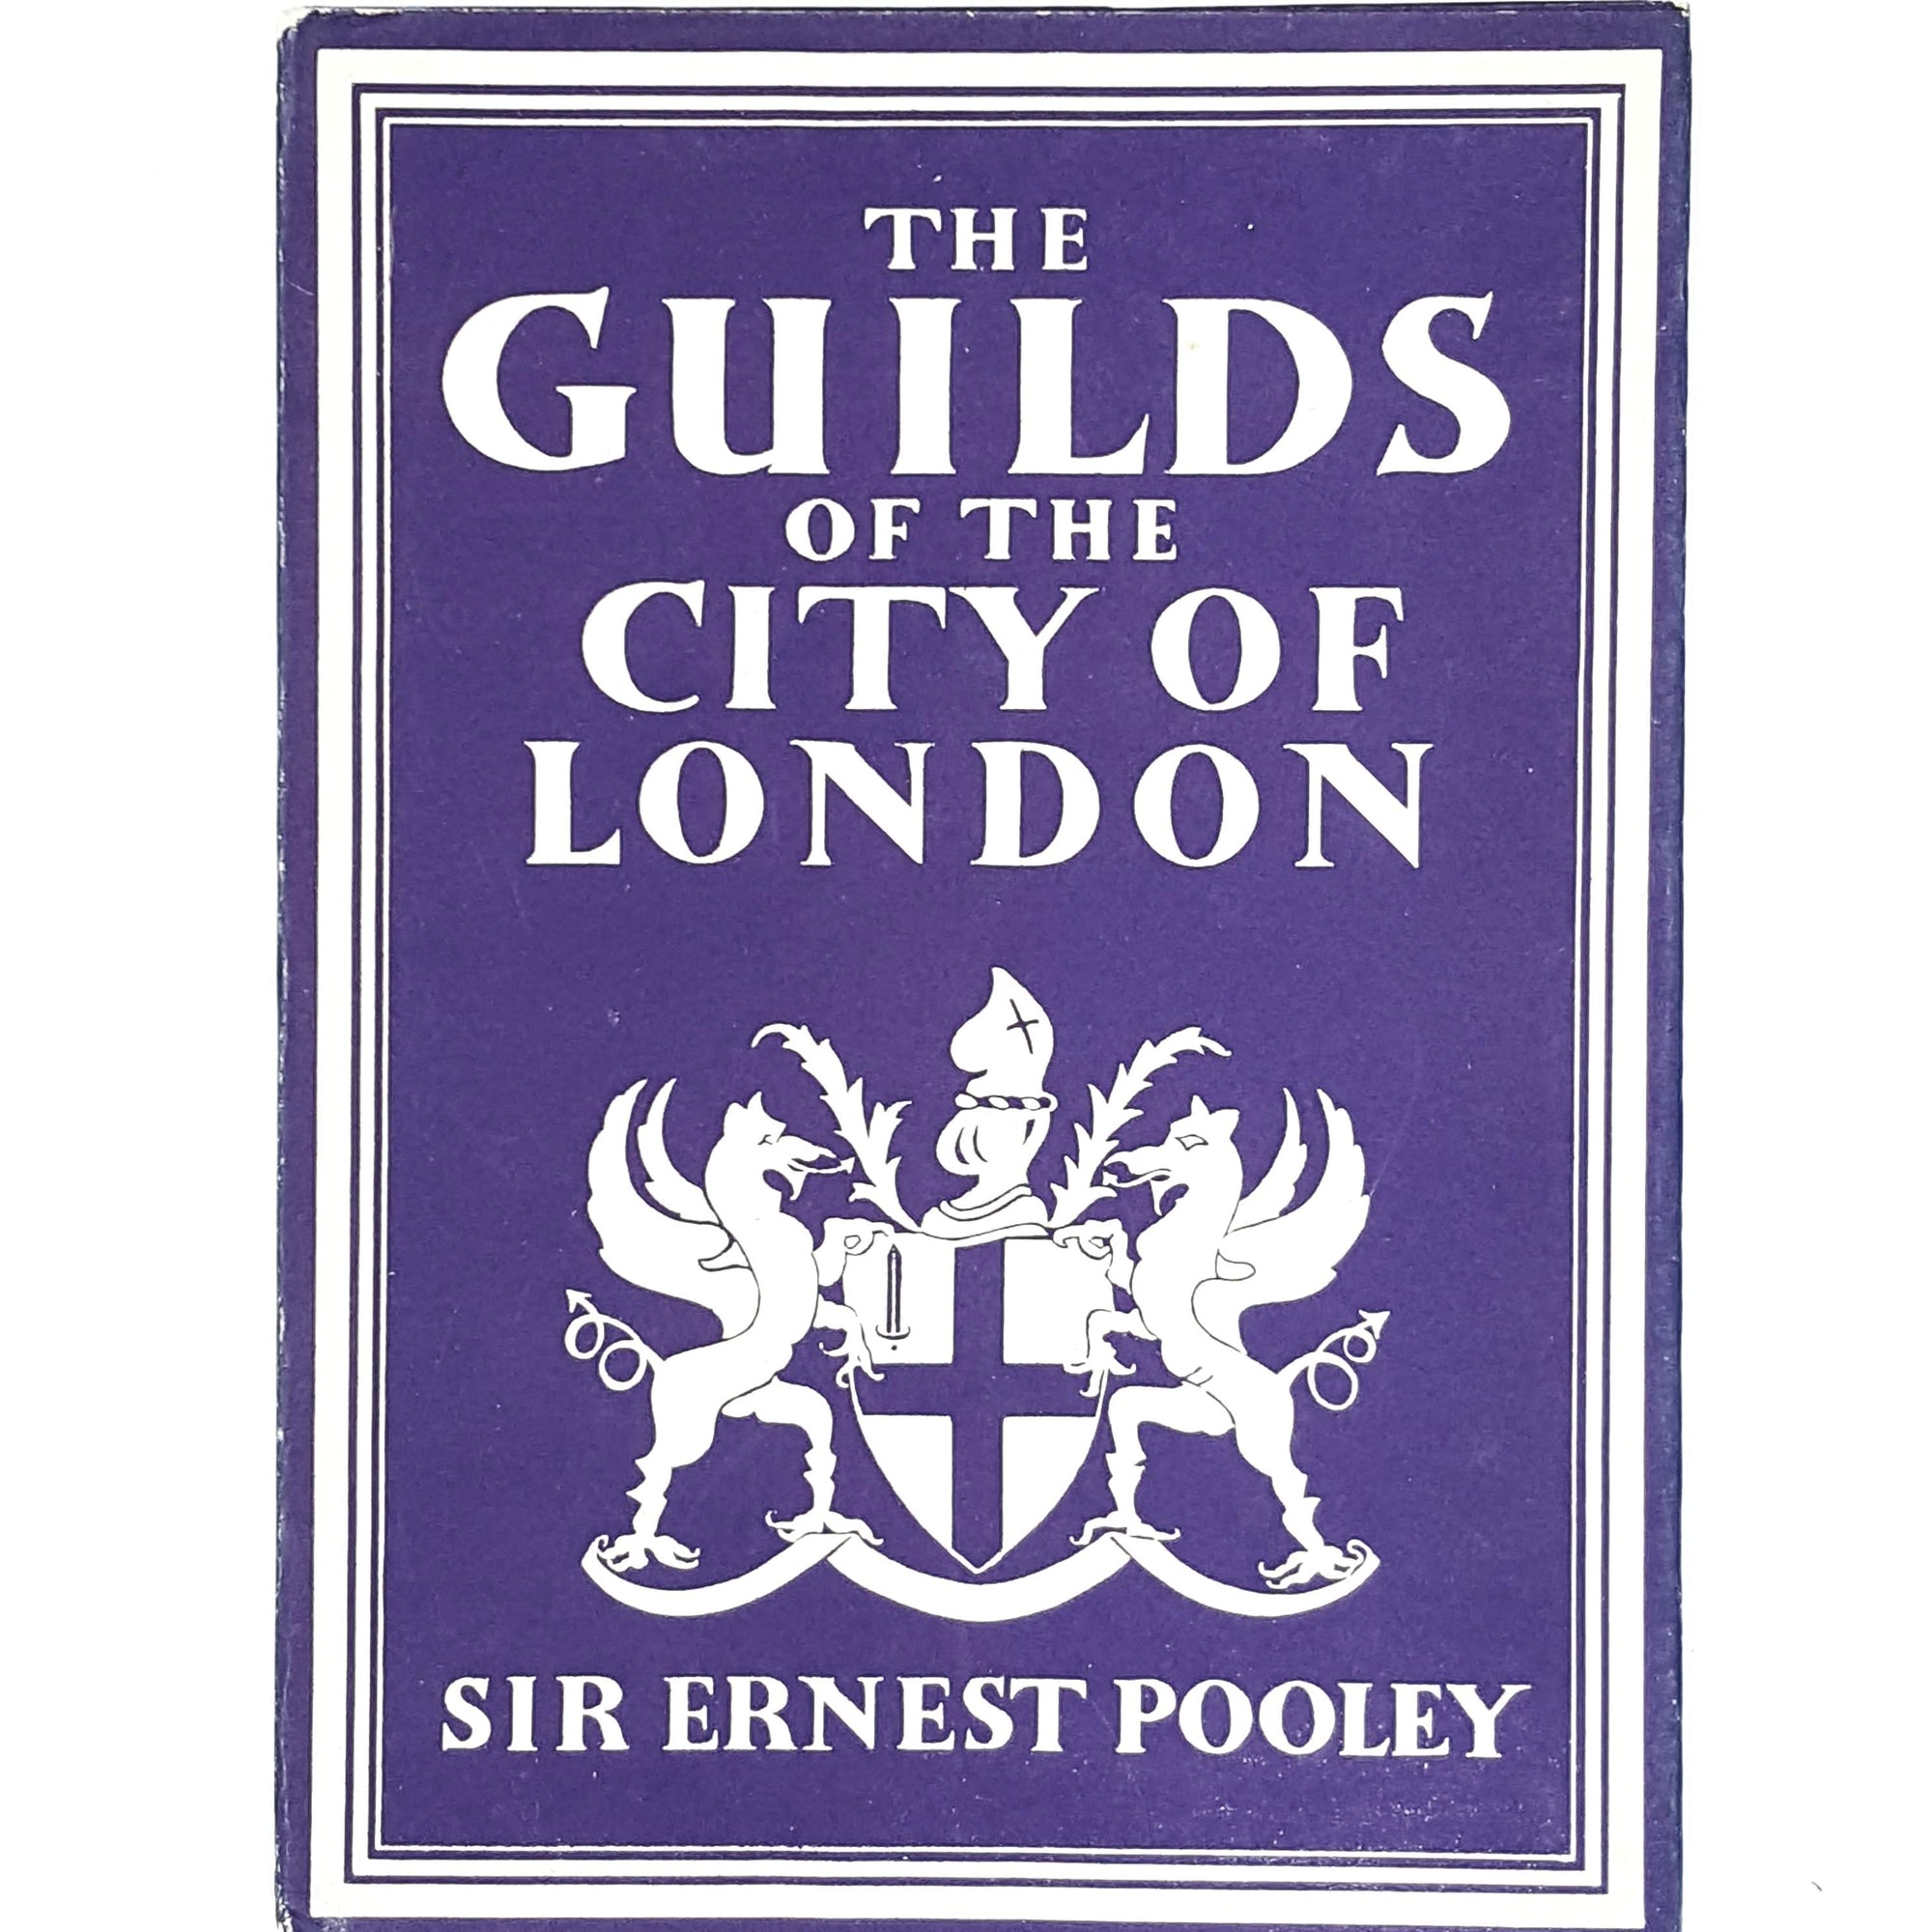 The Guilds of the City of London 1935